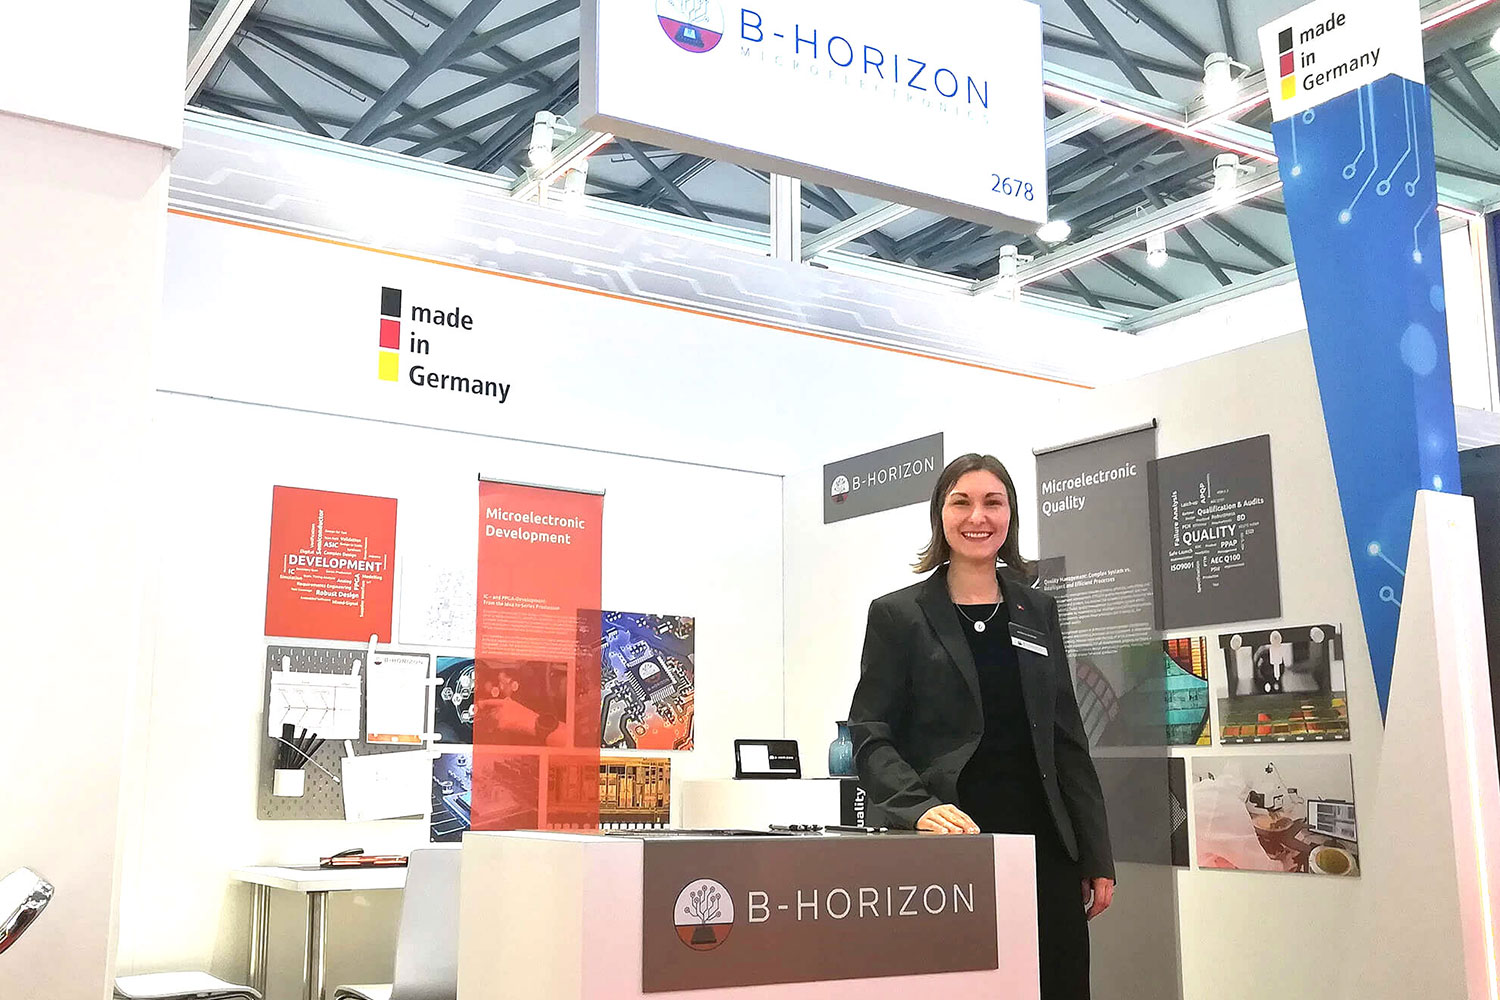 Helena Krämer (Executive Management Assistant) at B-Horizon's booth at the SEMICON China, which reflects the three fundamental pillars of the business model: Microelectronic development, quality management and consulting.